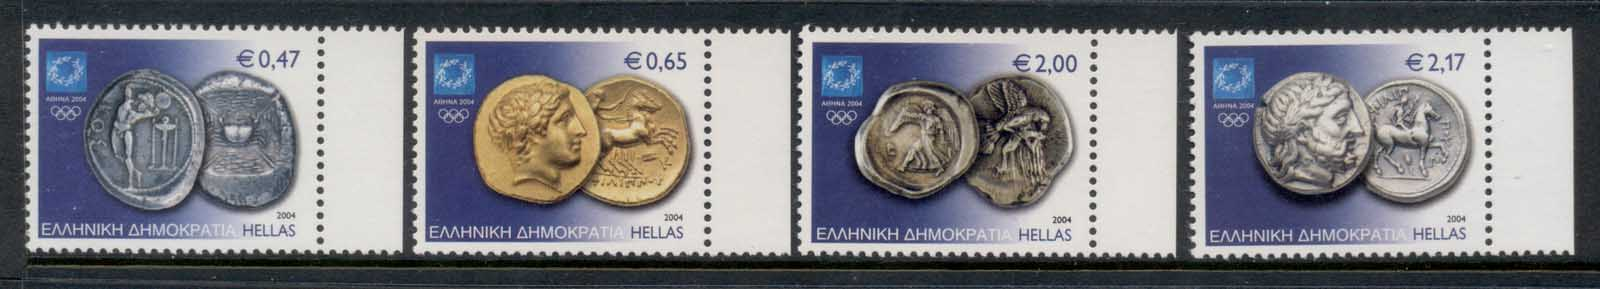 Greece 2004 Olympic Coins Muh